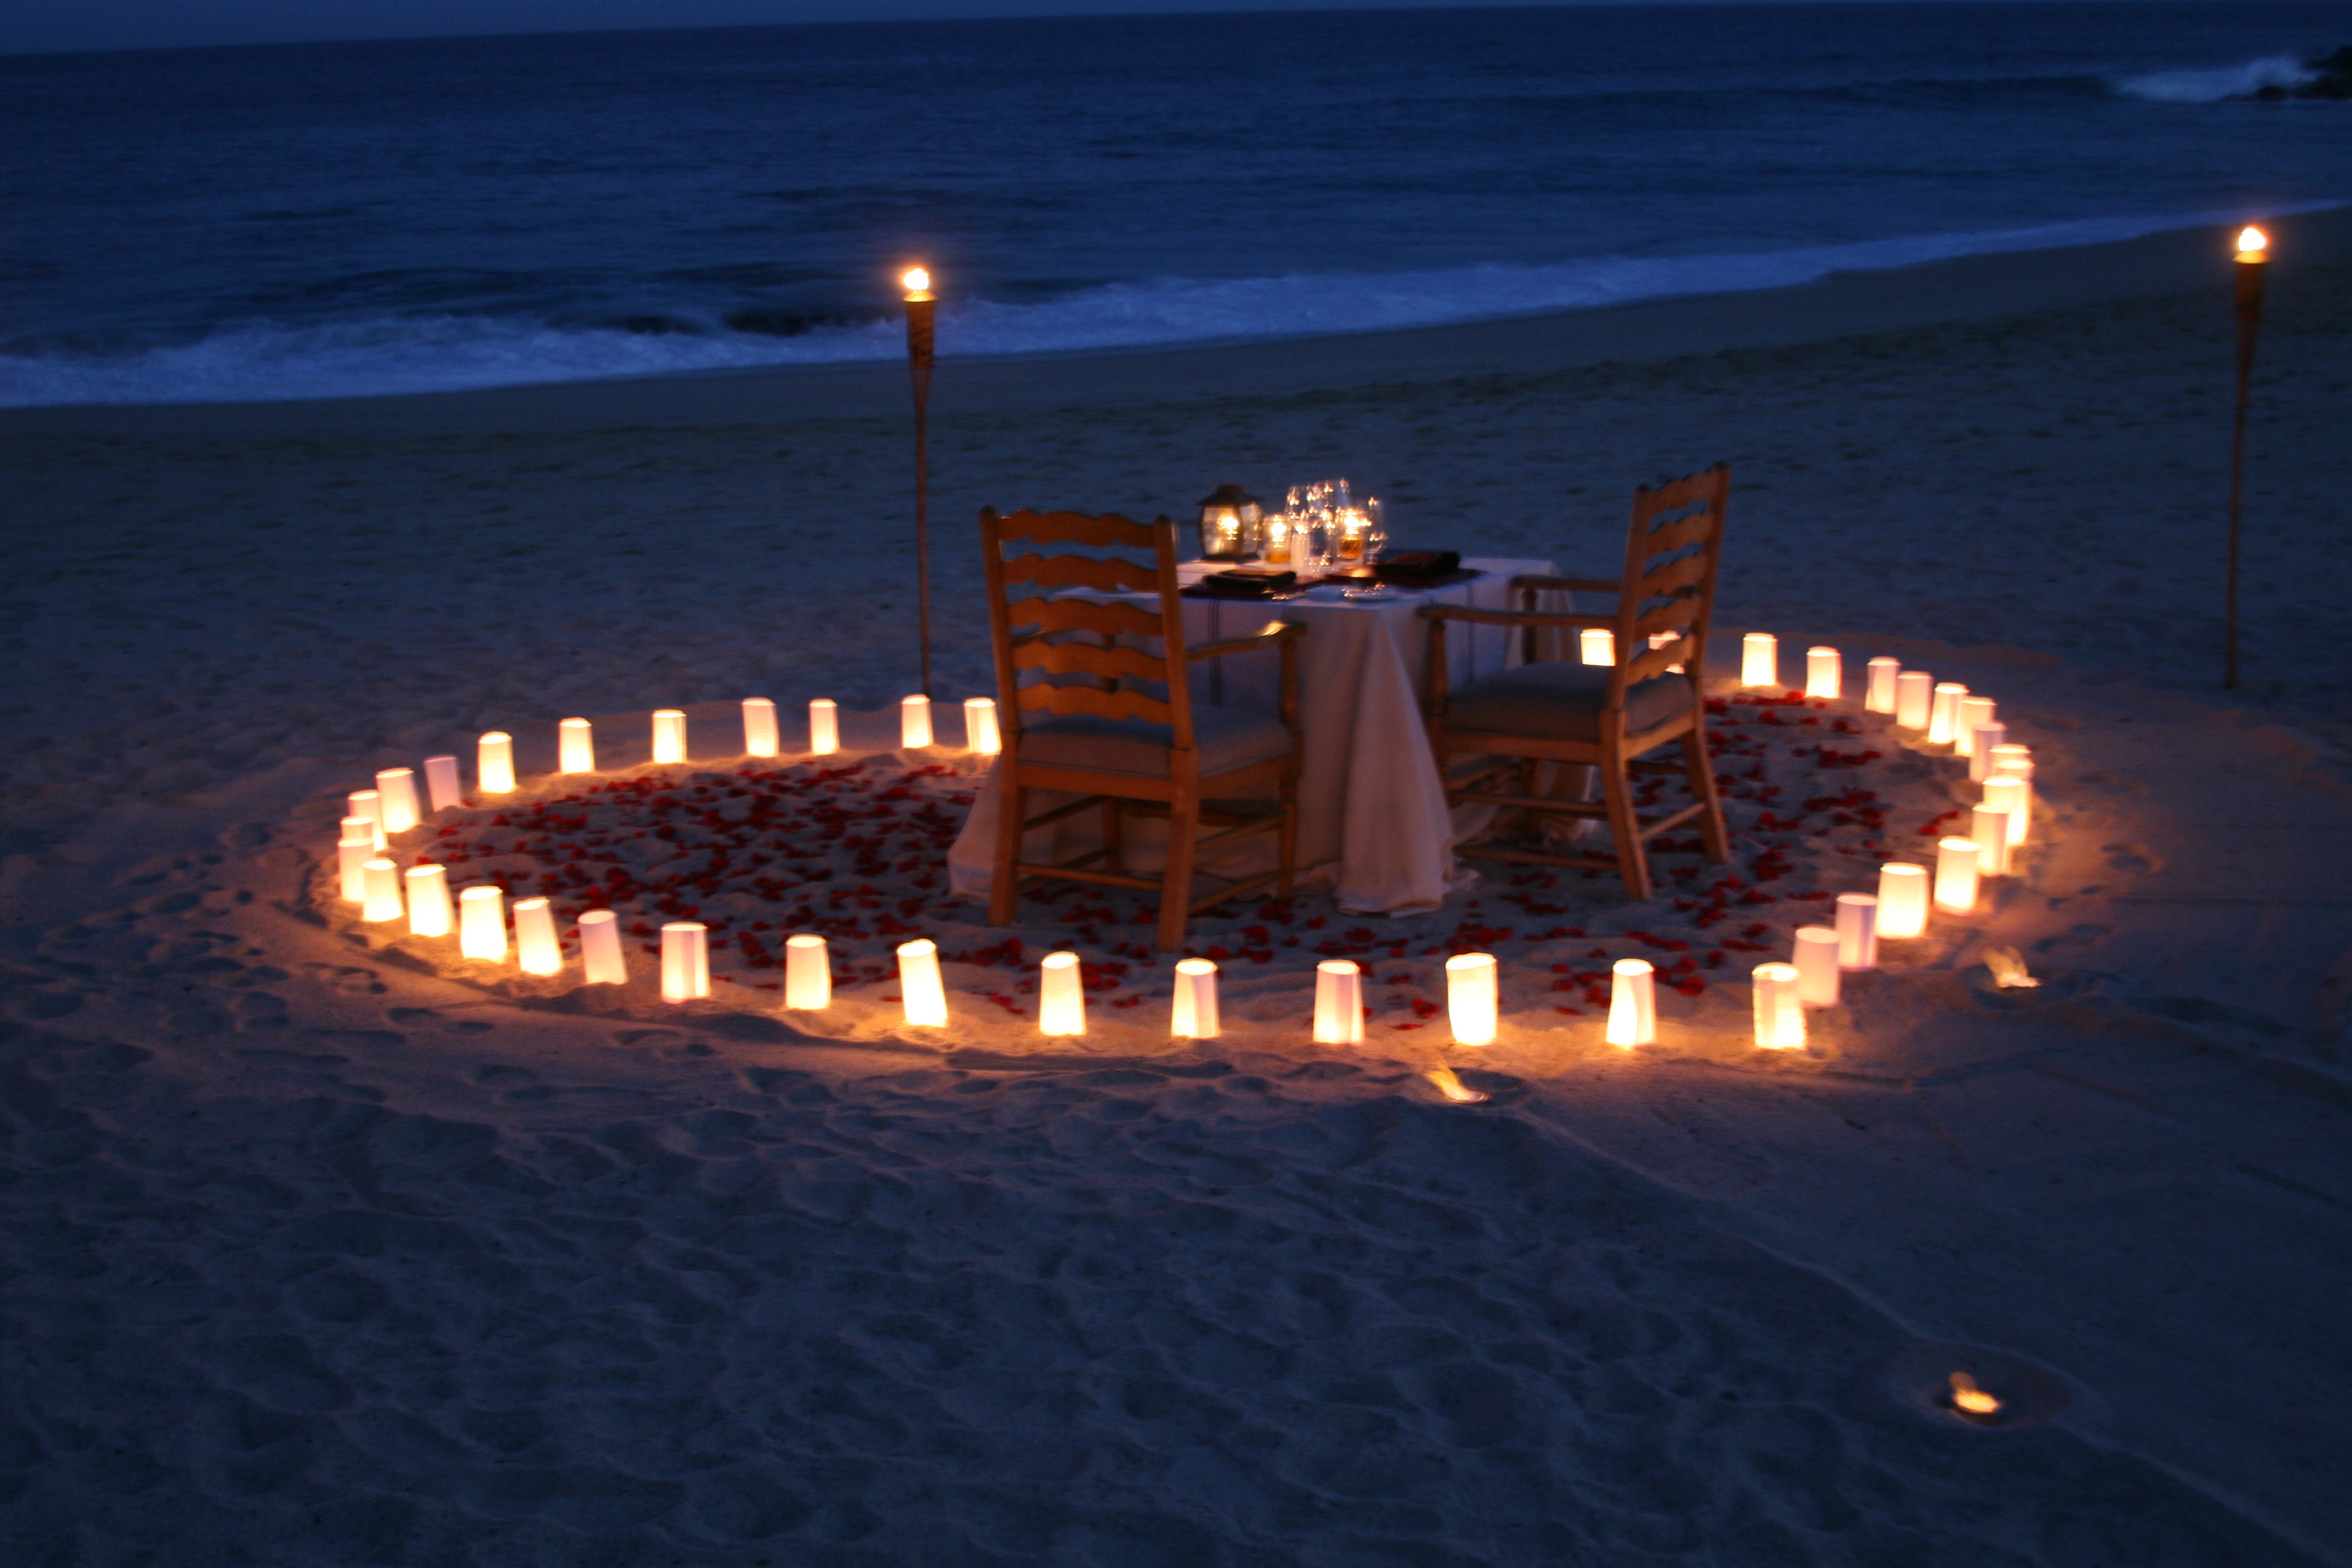 Romantic Dinner Wallpapers High Quality